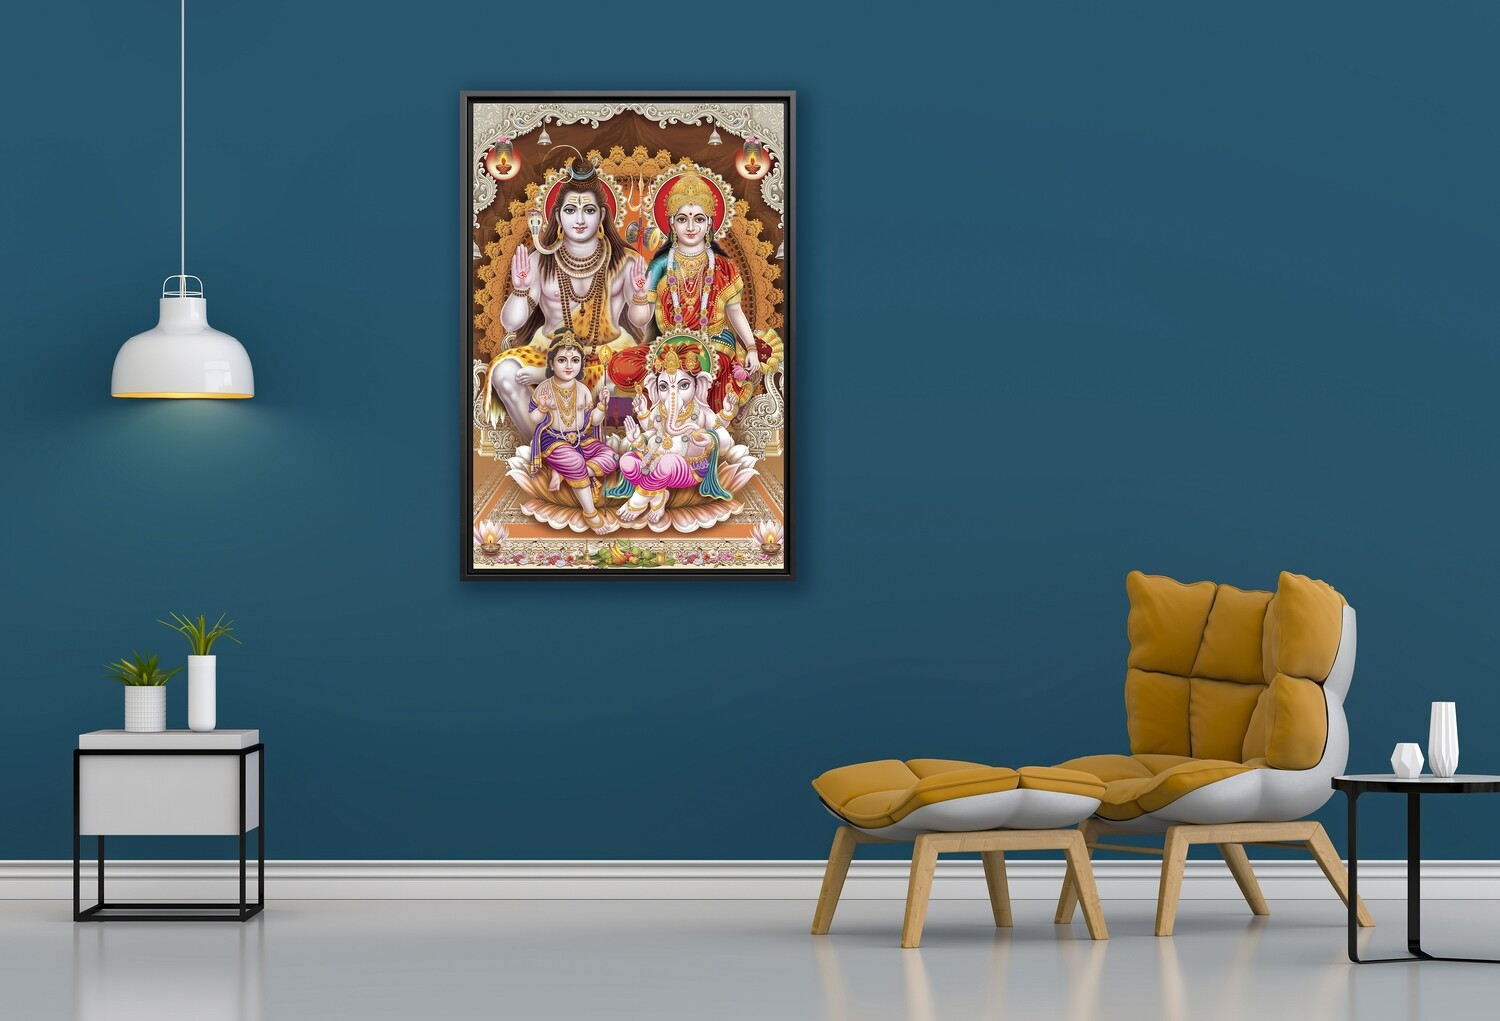 Shiva Parvathy Family Painting - Framed Hindu God Modern Wal lart - Shiva Parvathy Ganesha Muruka Picture Printed on  Acrylic Glass |Framed and Ready To Hang